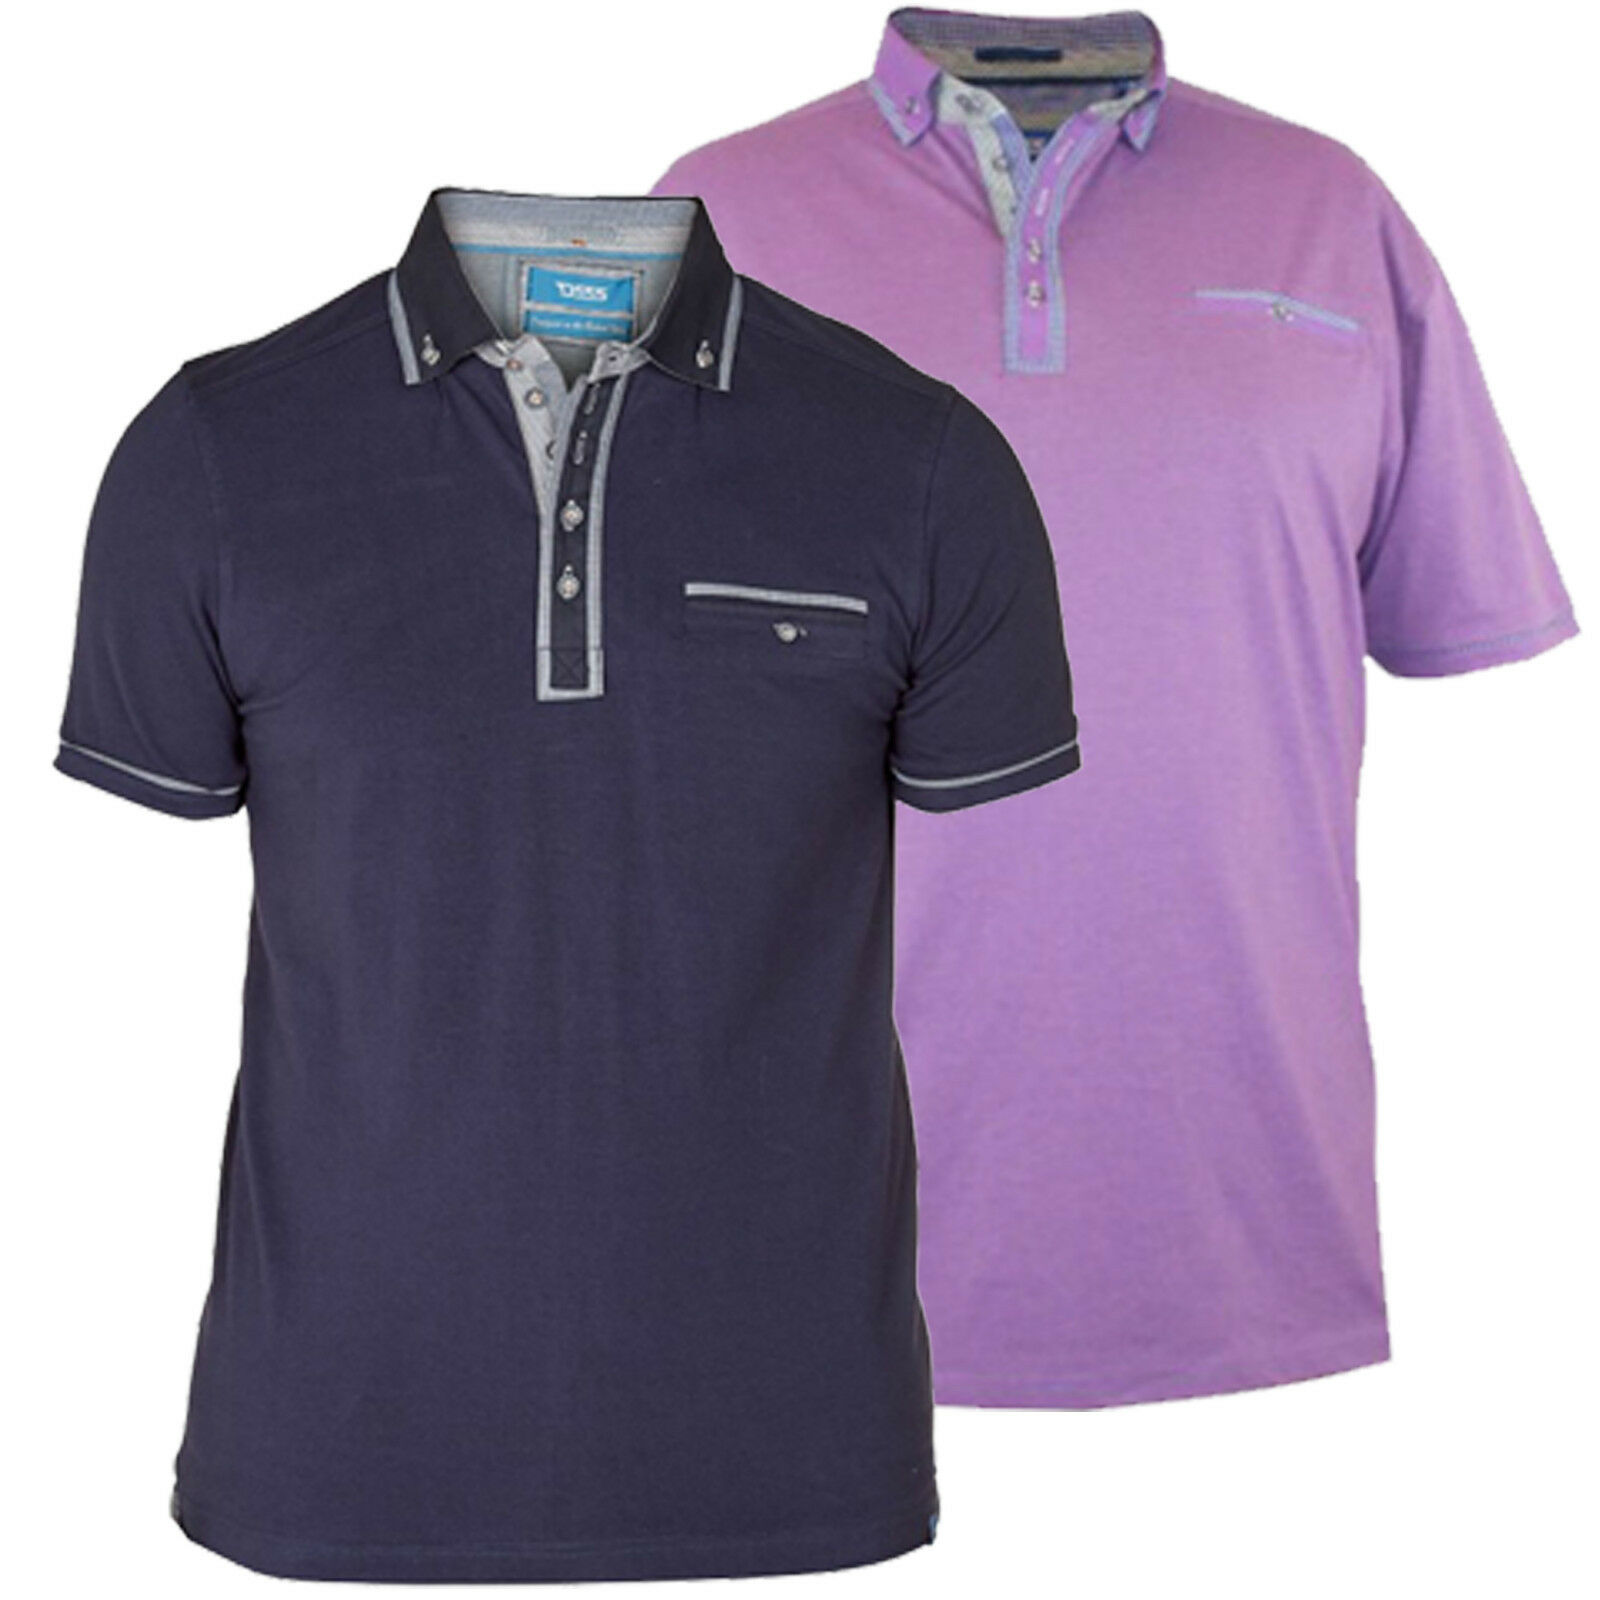 D555 Mens Branded King Size Long Sleeve Smart Casual Polo Shirt BNWT